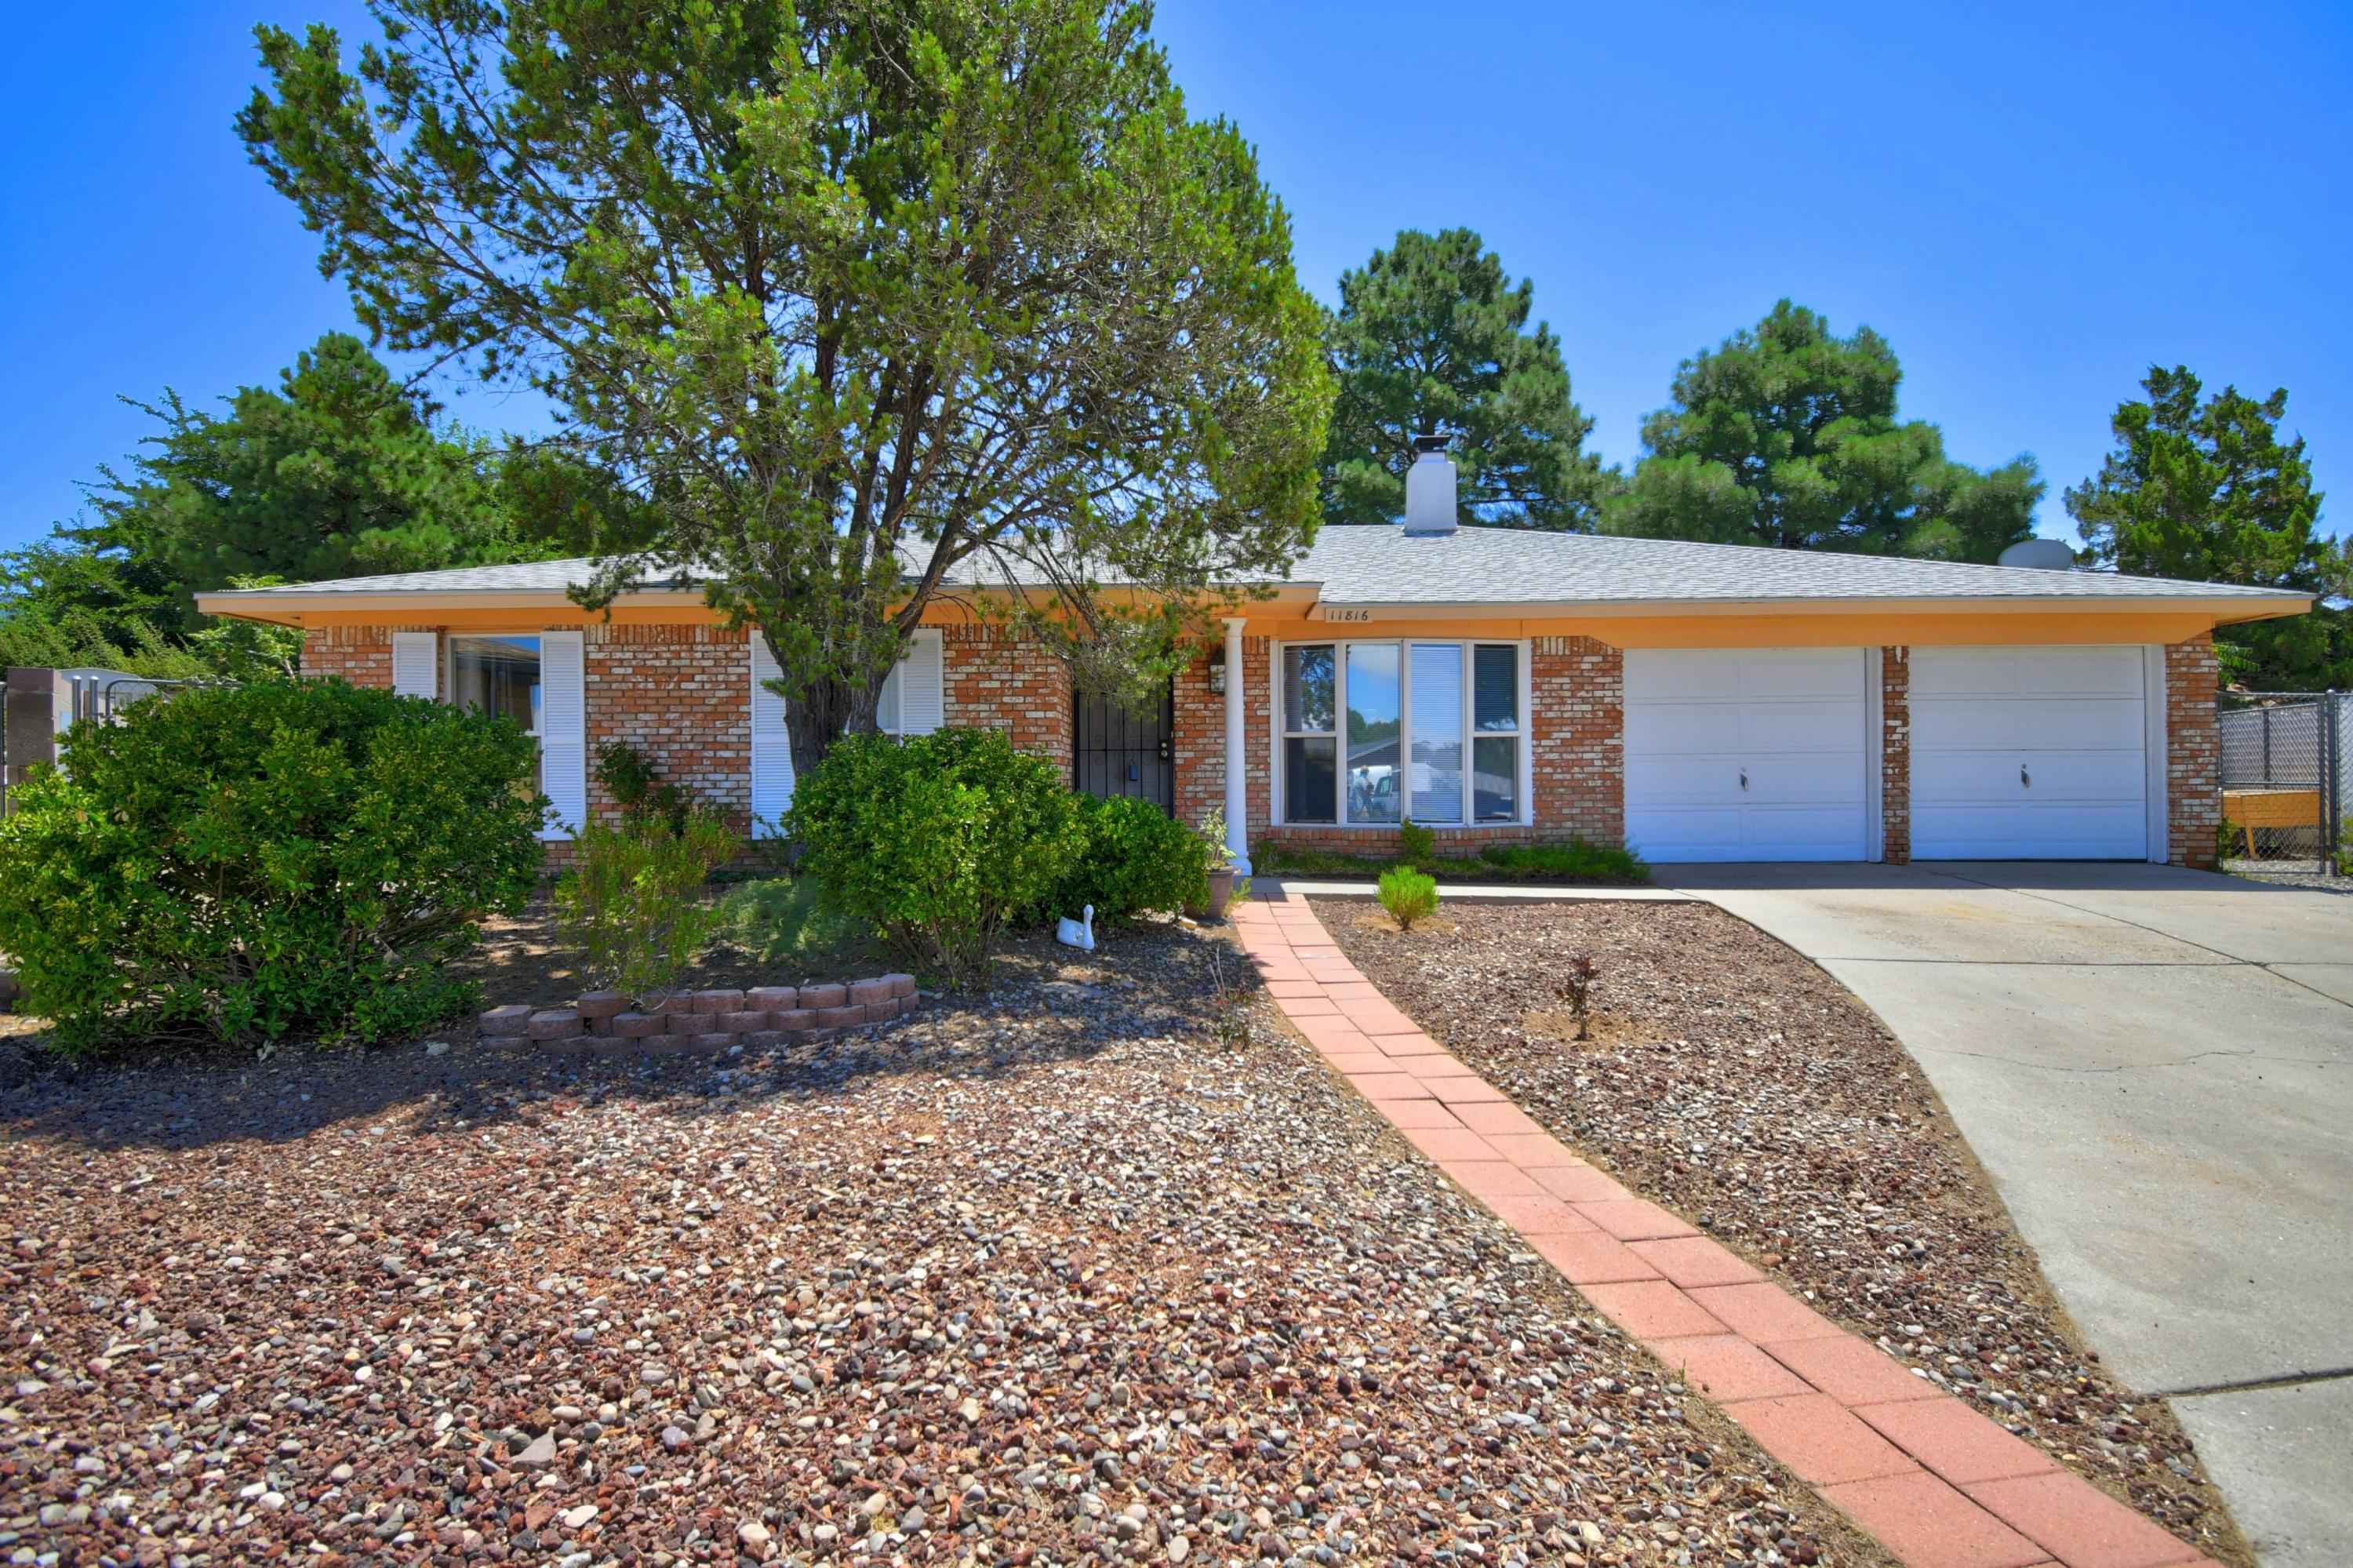 11816 TRACY Court NE Property Photo - Albuquerque, NM real estate listing